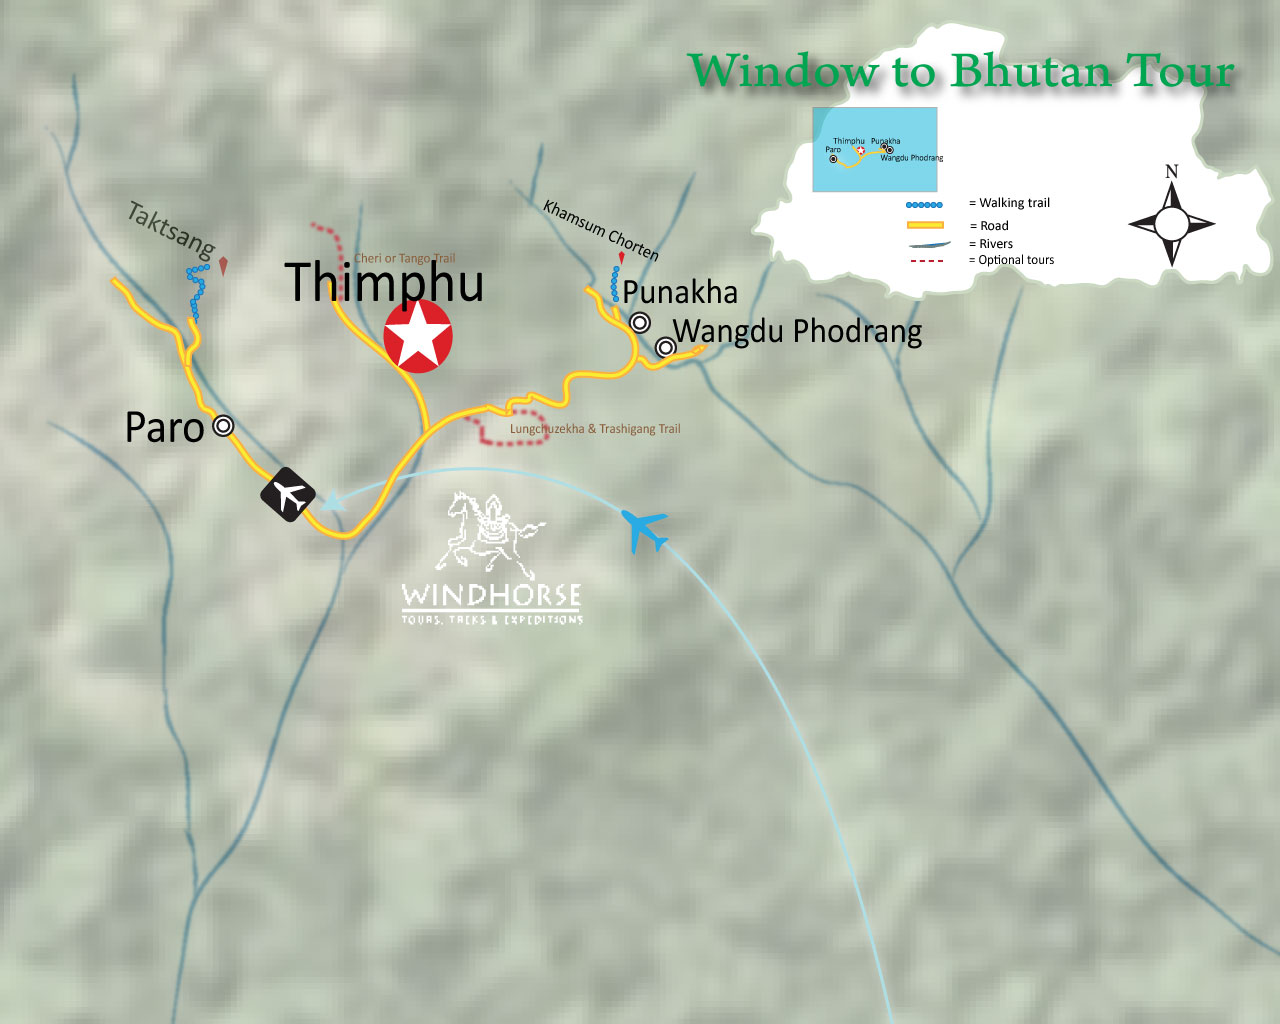 Window to Bhutan Trip Map, Route Map